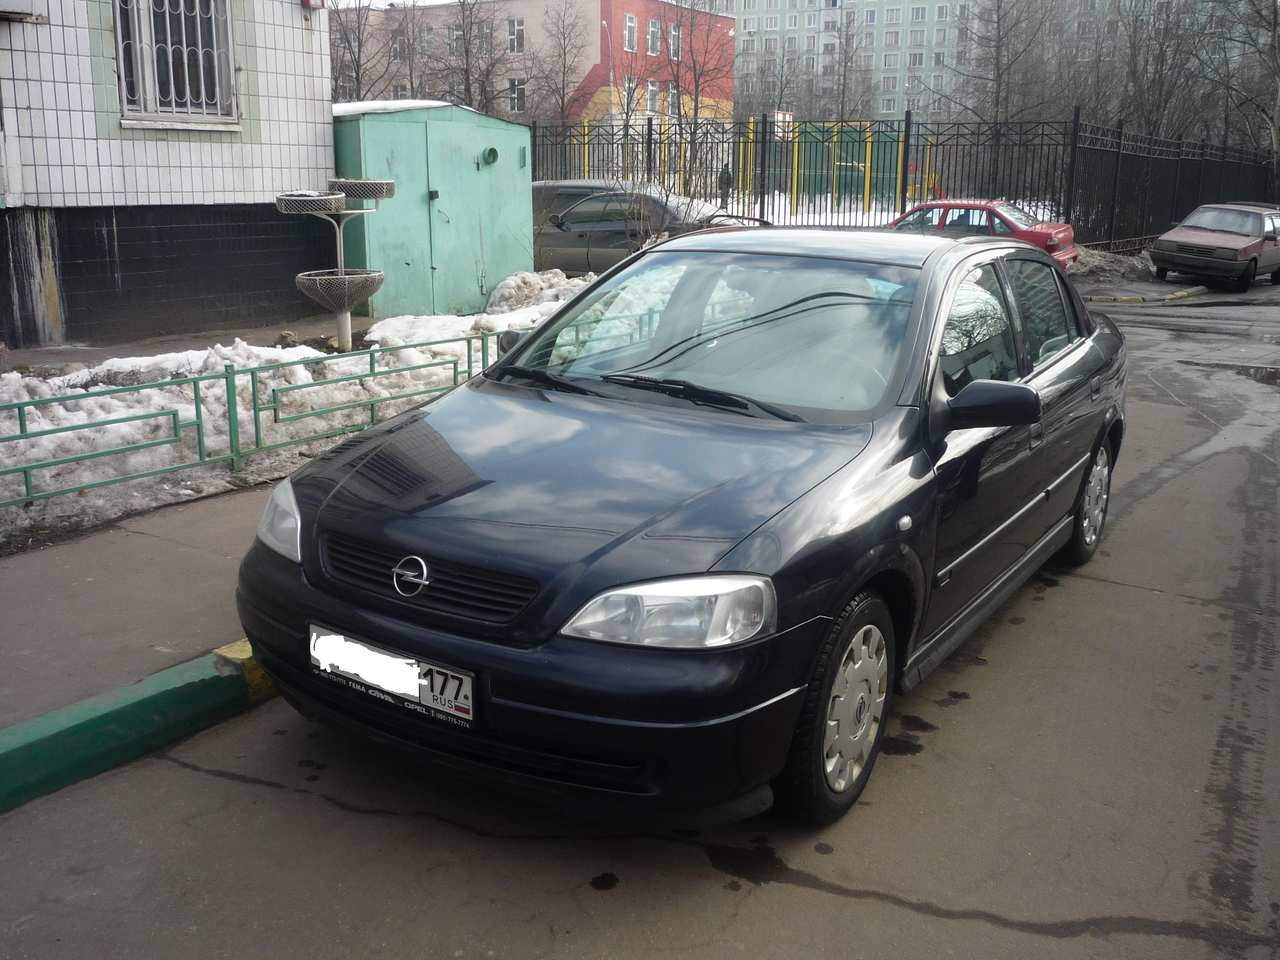 used 2003 opel astra photos 1600cc gasoline ff manual. Black Bedroom Furniture Sets. Home Design Ideas